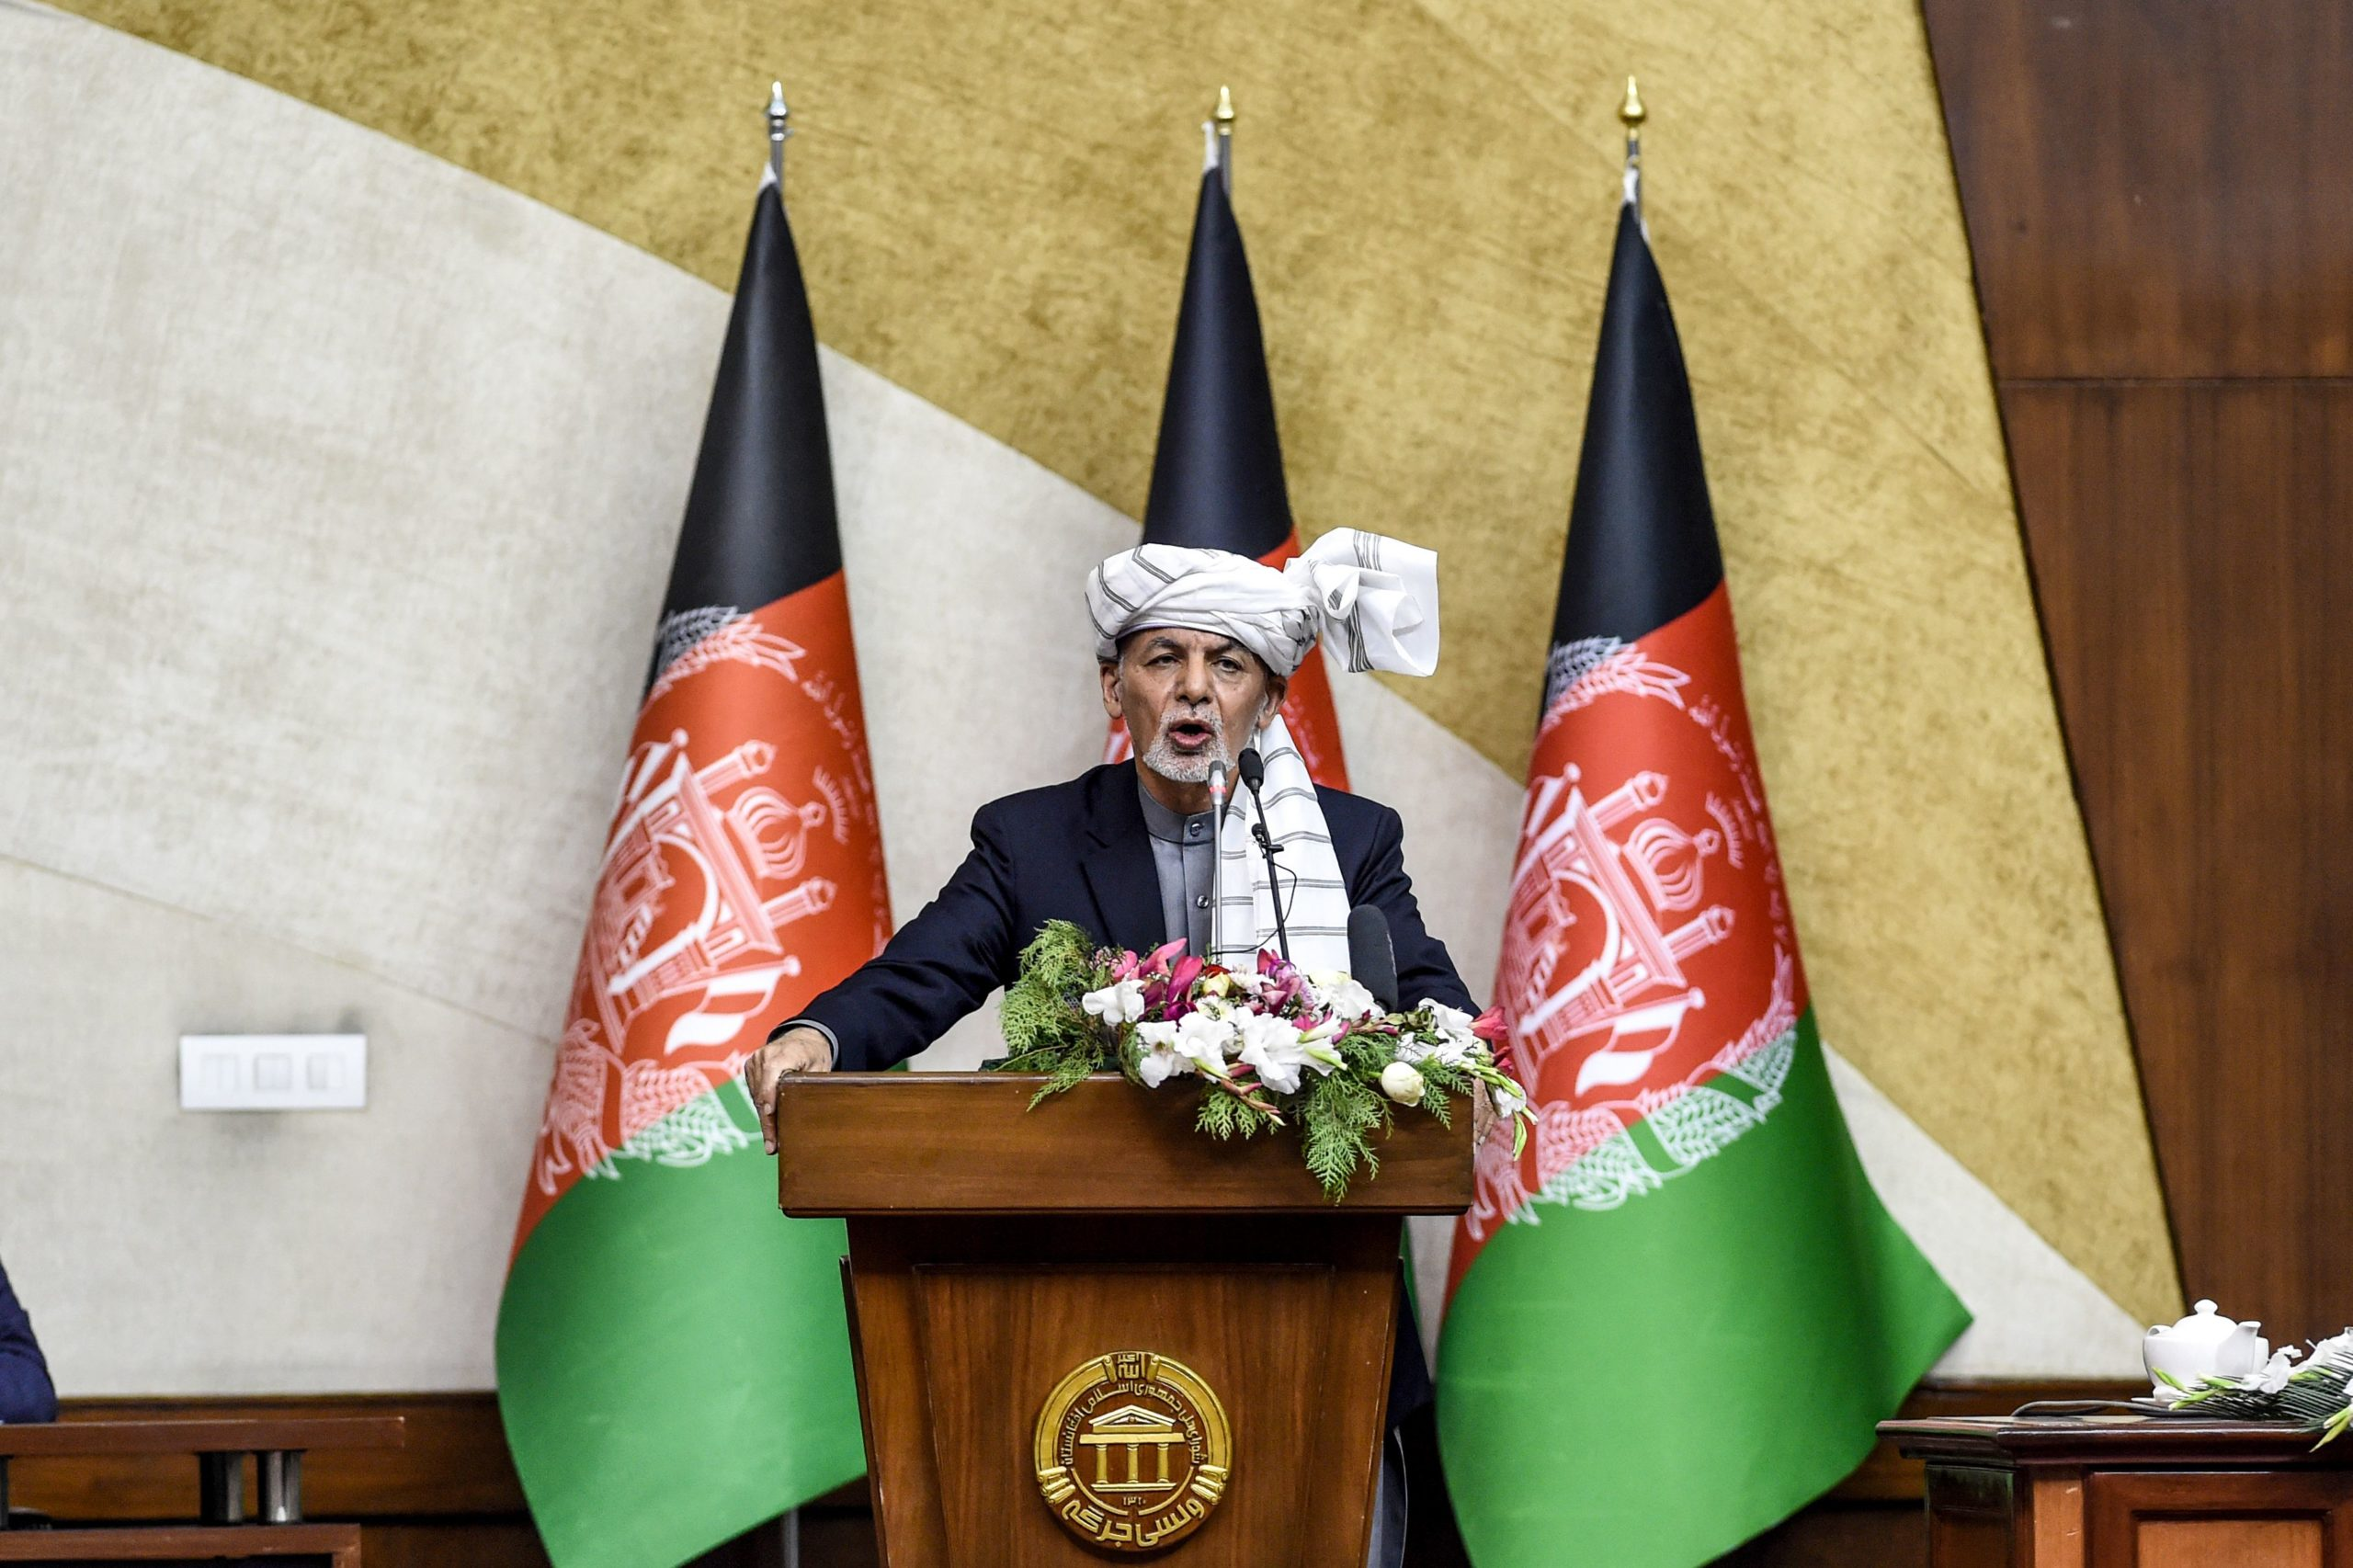 Afghanistan's President Ashraf Ghani speaks during the introduction of ministerial nominees at the Parliament in Kabul on October 21, 2020. (Photo by WAKIL KOHSAR / AFP) (Photo by WAKIL KOHSAR/AFP via Getty Images)